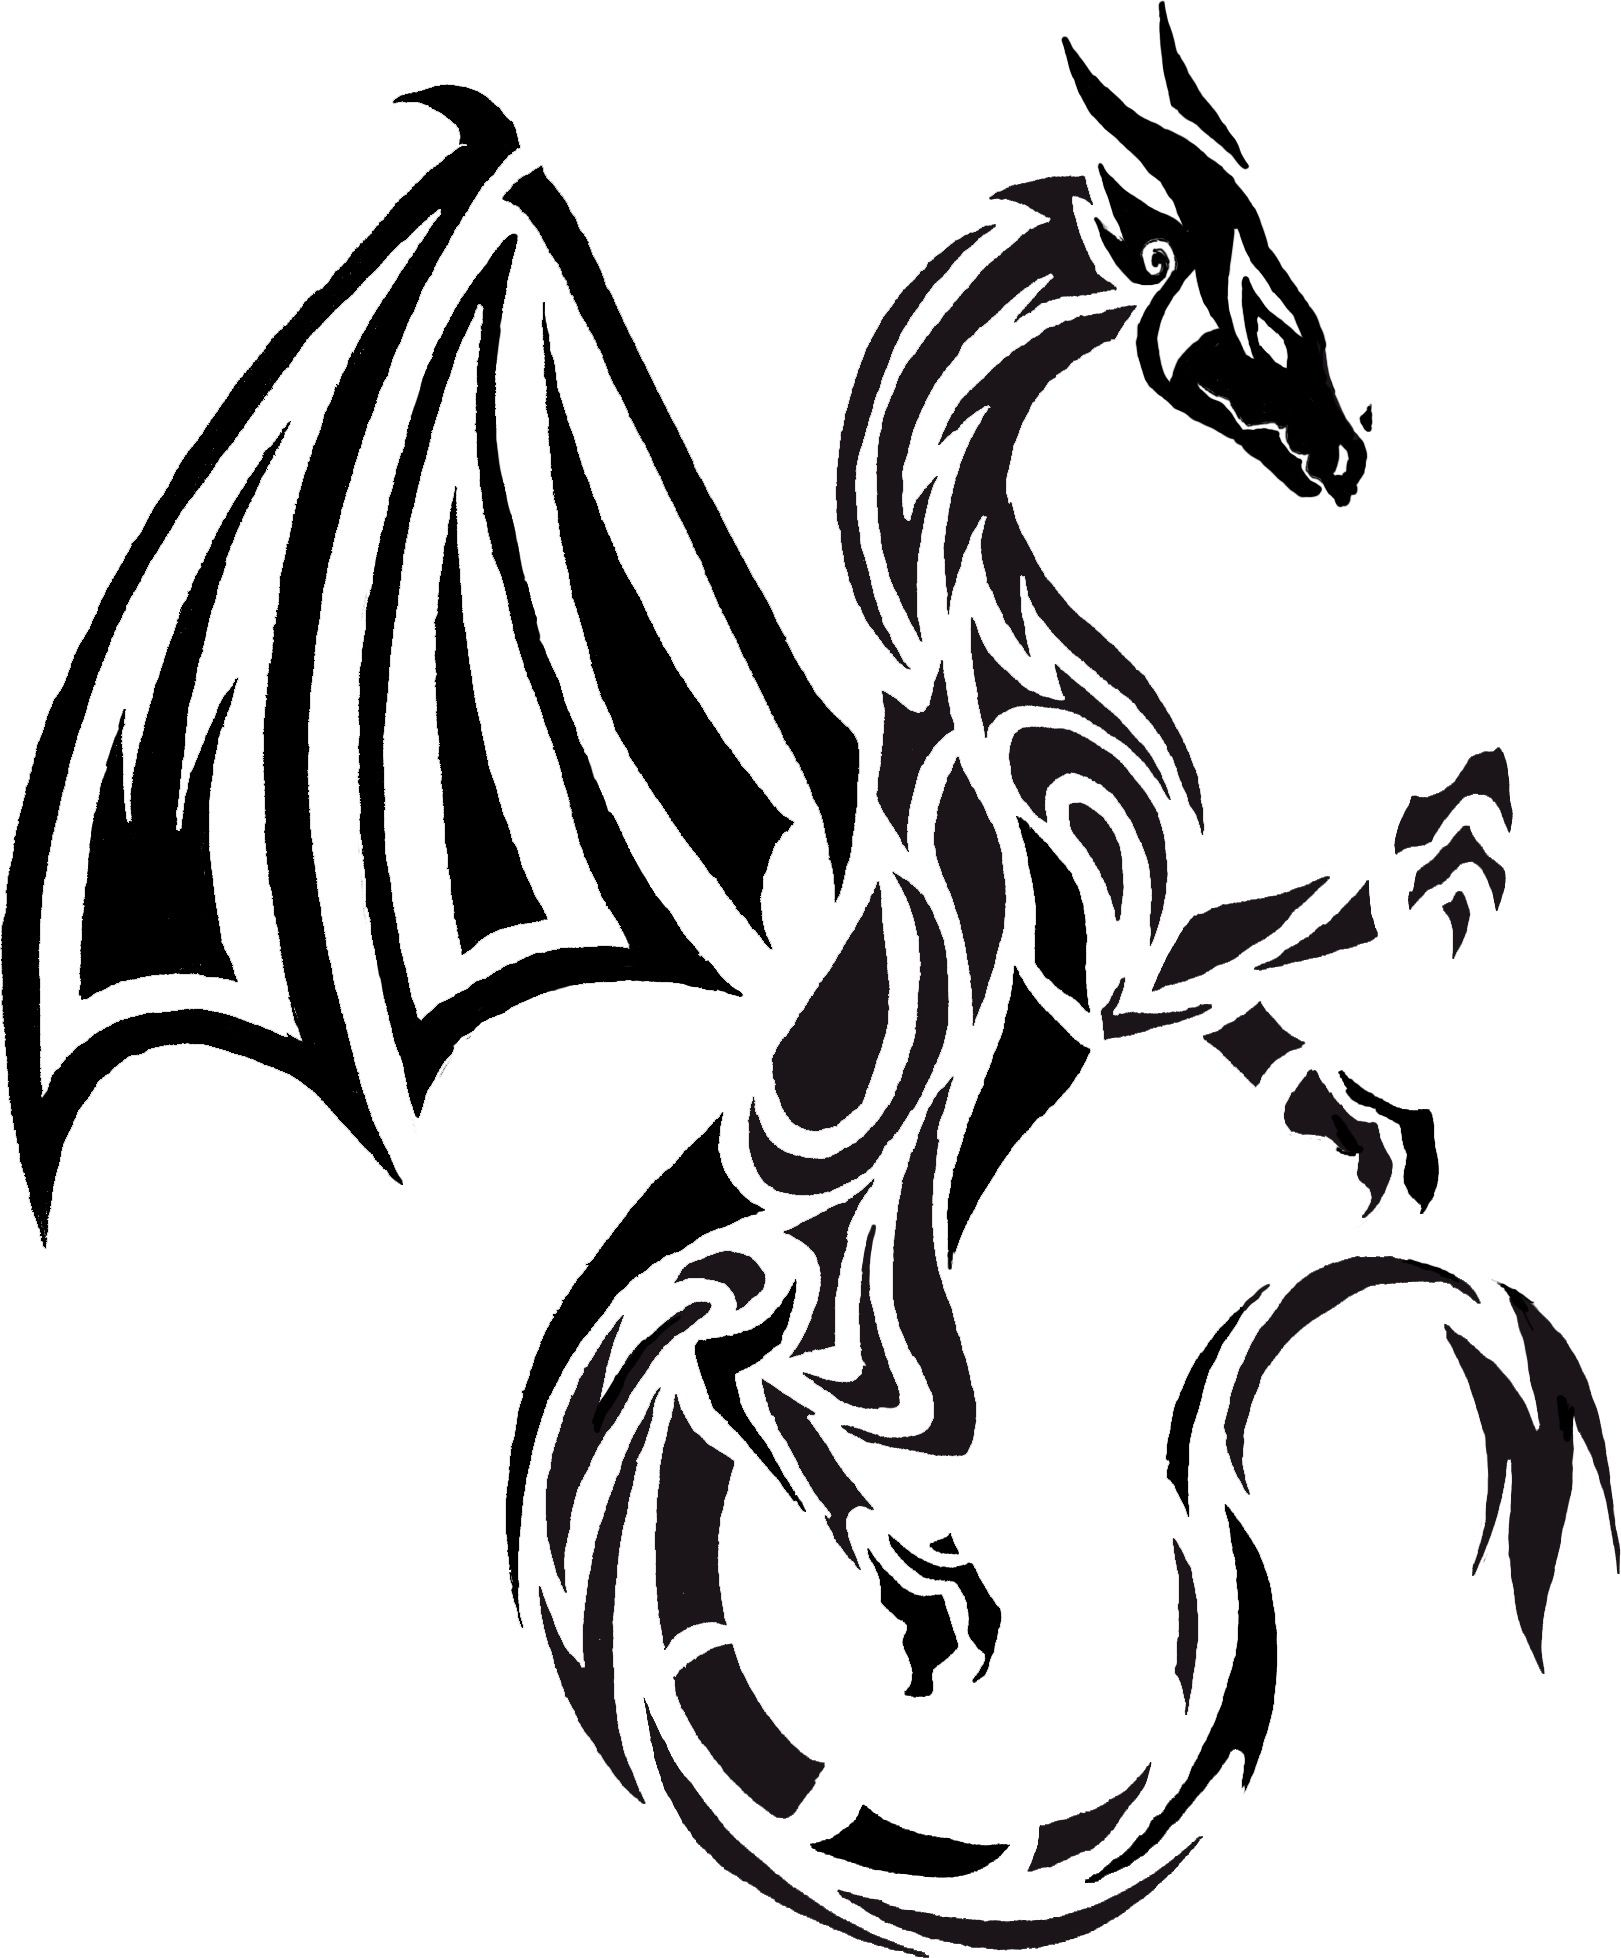 Another Dragon Tattoo Idea